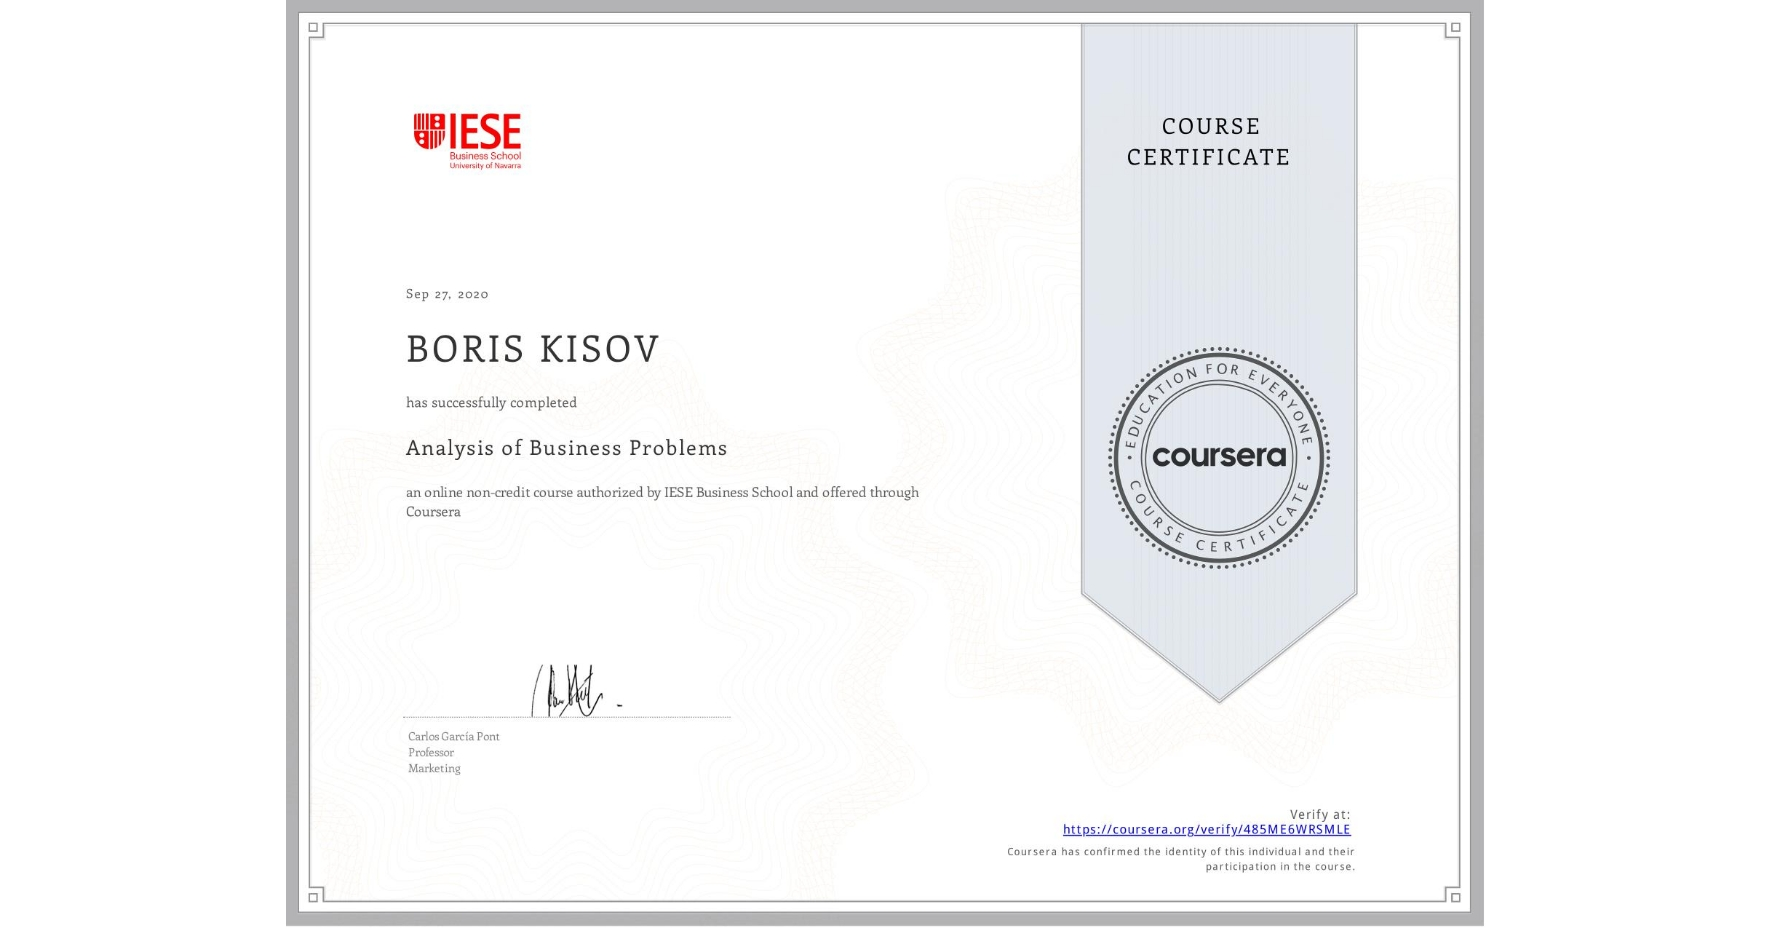 View certificate for BORIS KISOV, Analysis of Business Problems, an online non-credit course authorized by IESE Business School and offered through Coursera